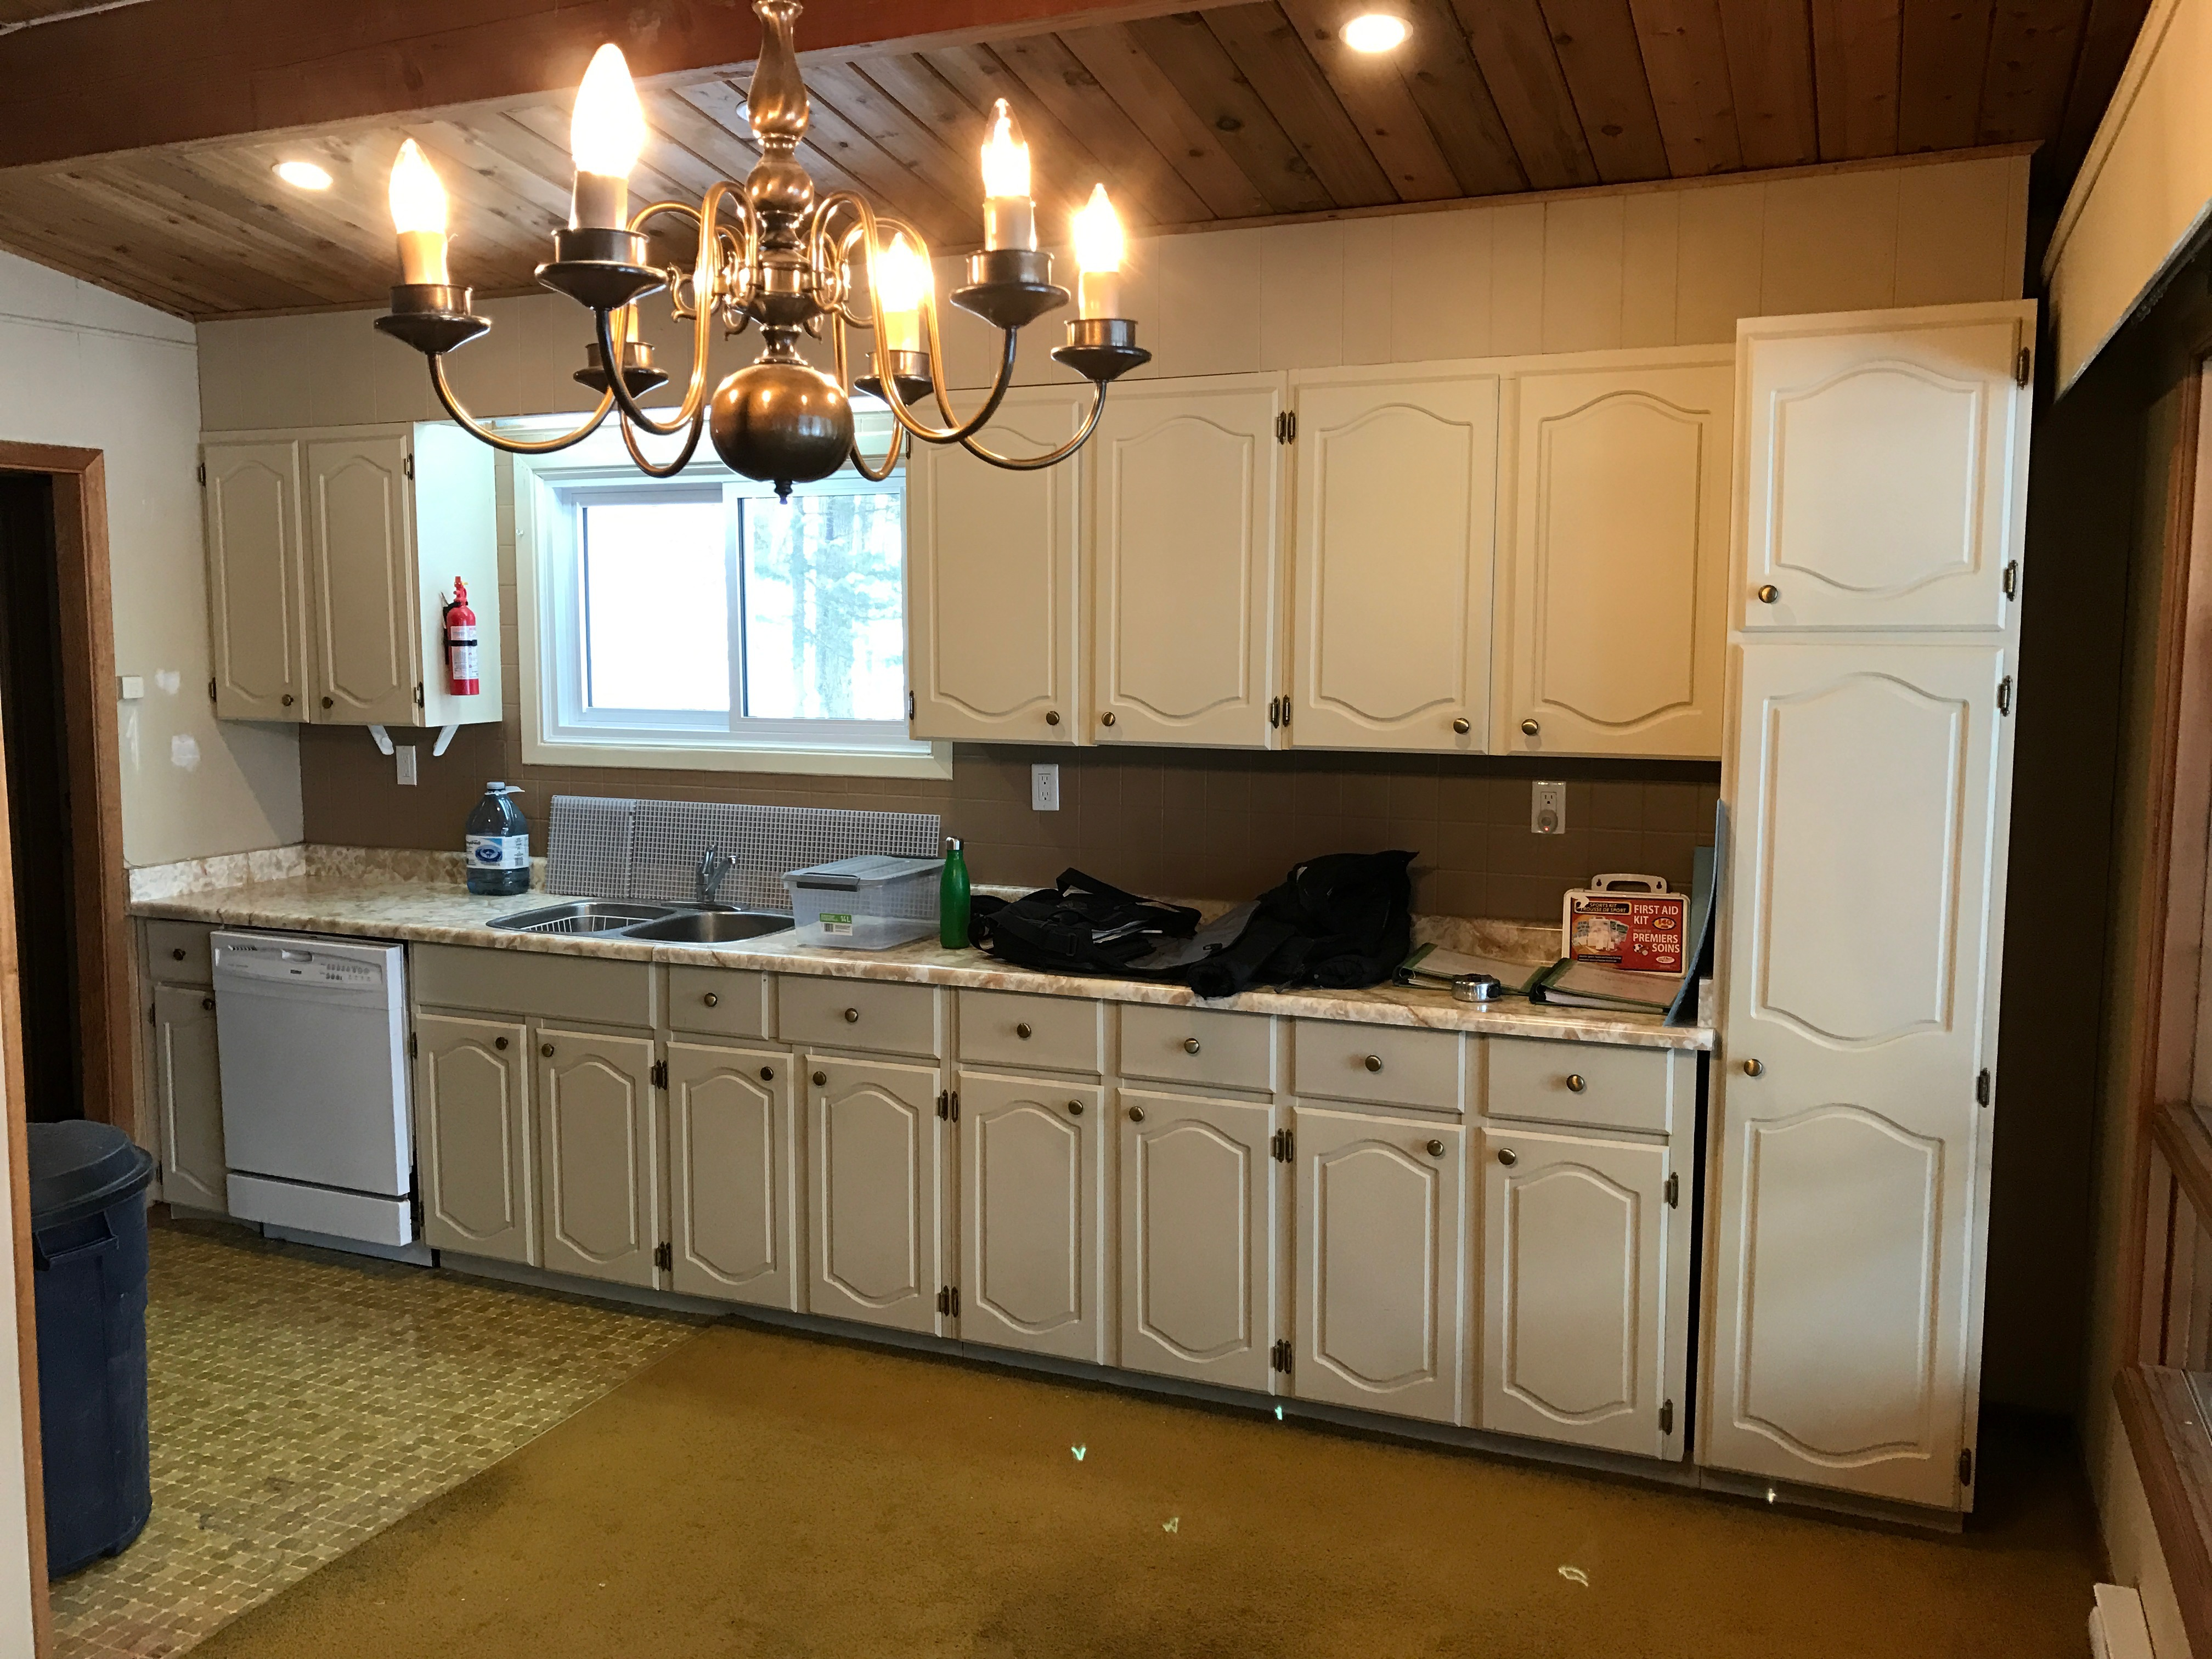 Design and renovate project - The Revival  - Kitchen Pre-Construction